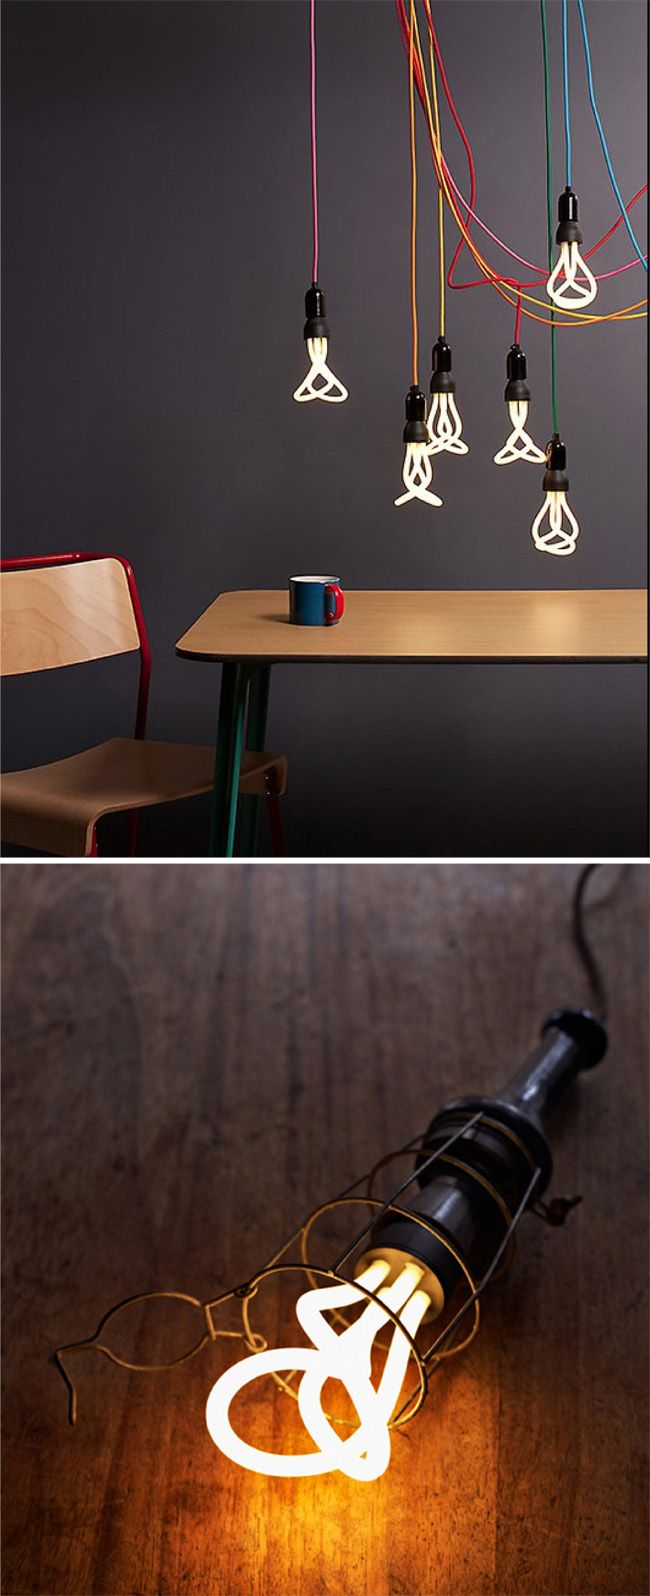 Obsessed with Plumen, the world's first designer energy saving light bulb. The colour cords look amazing with them!